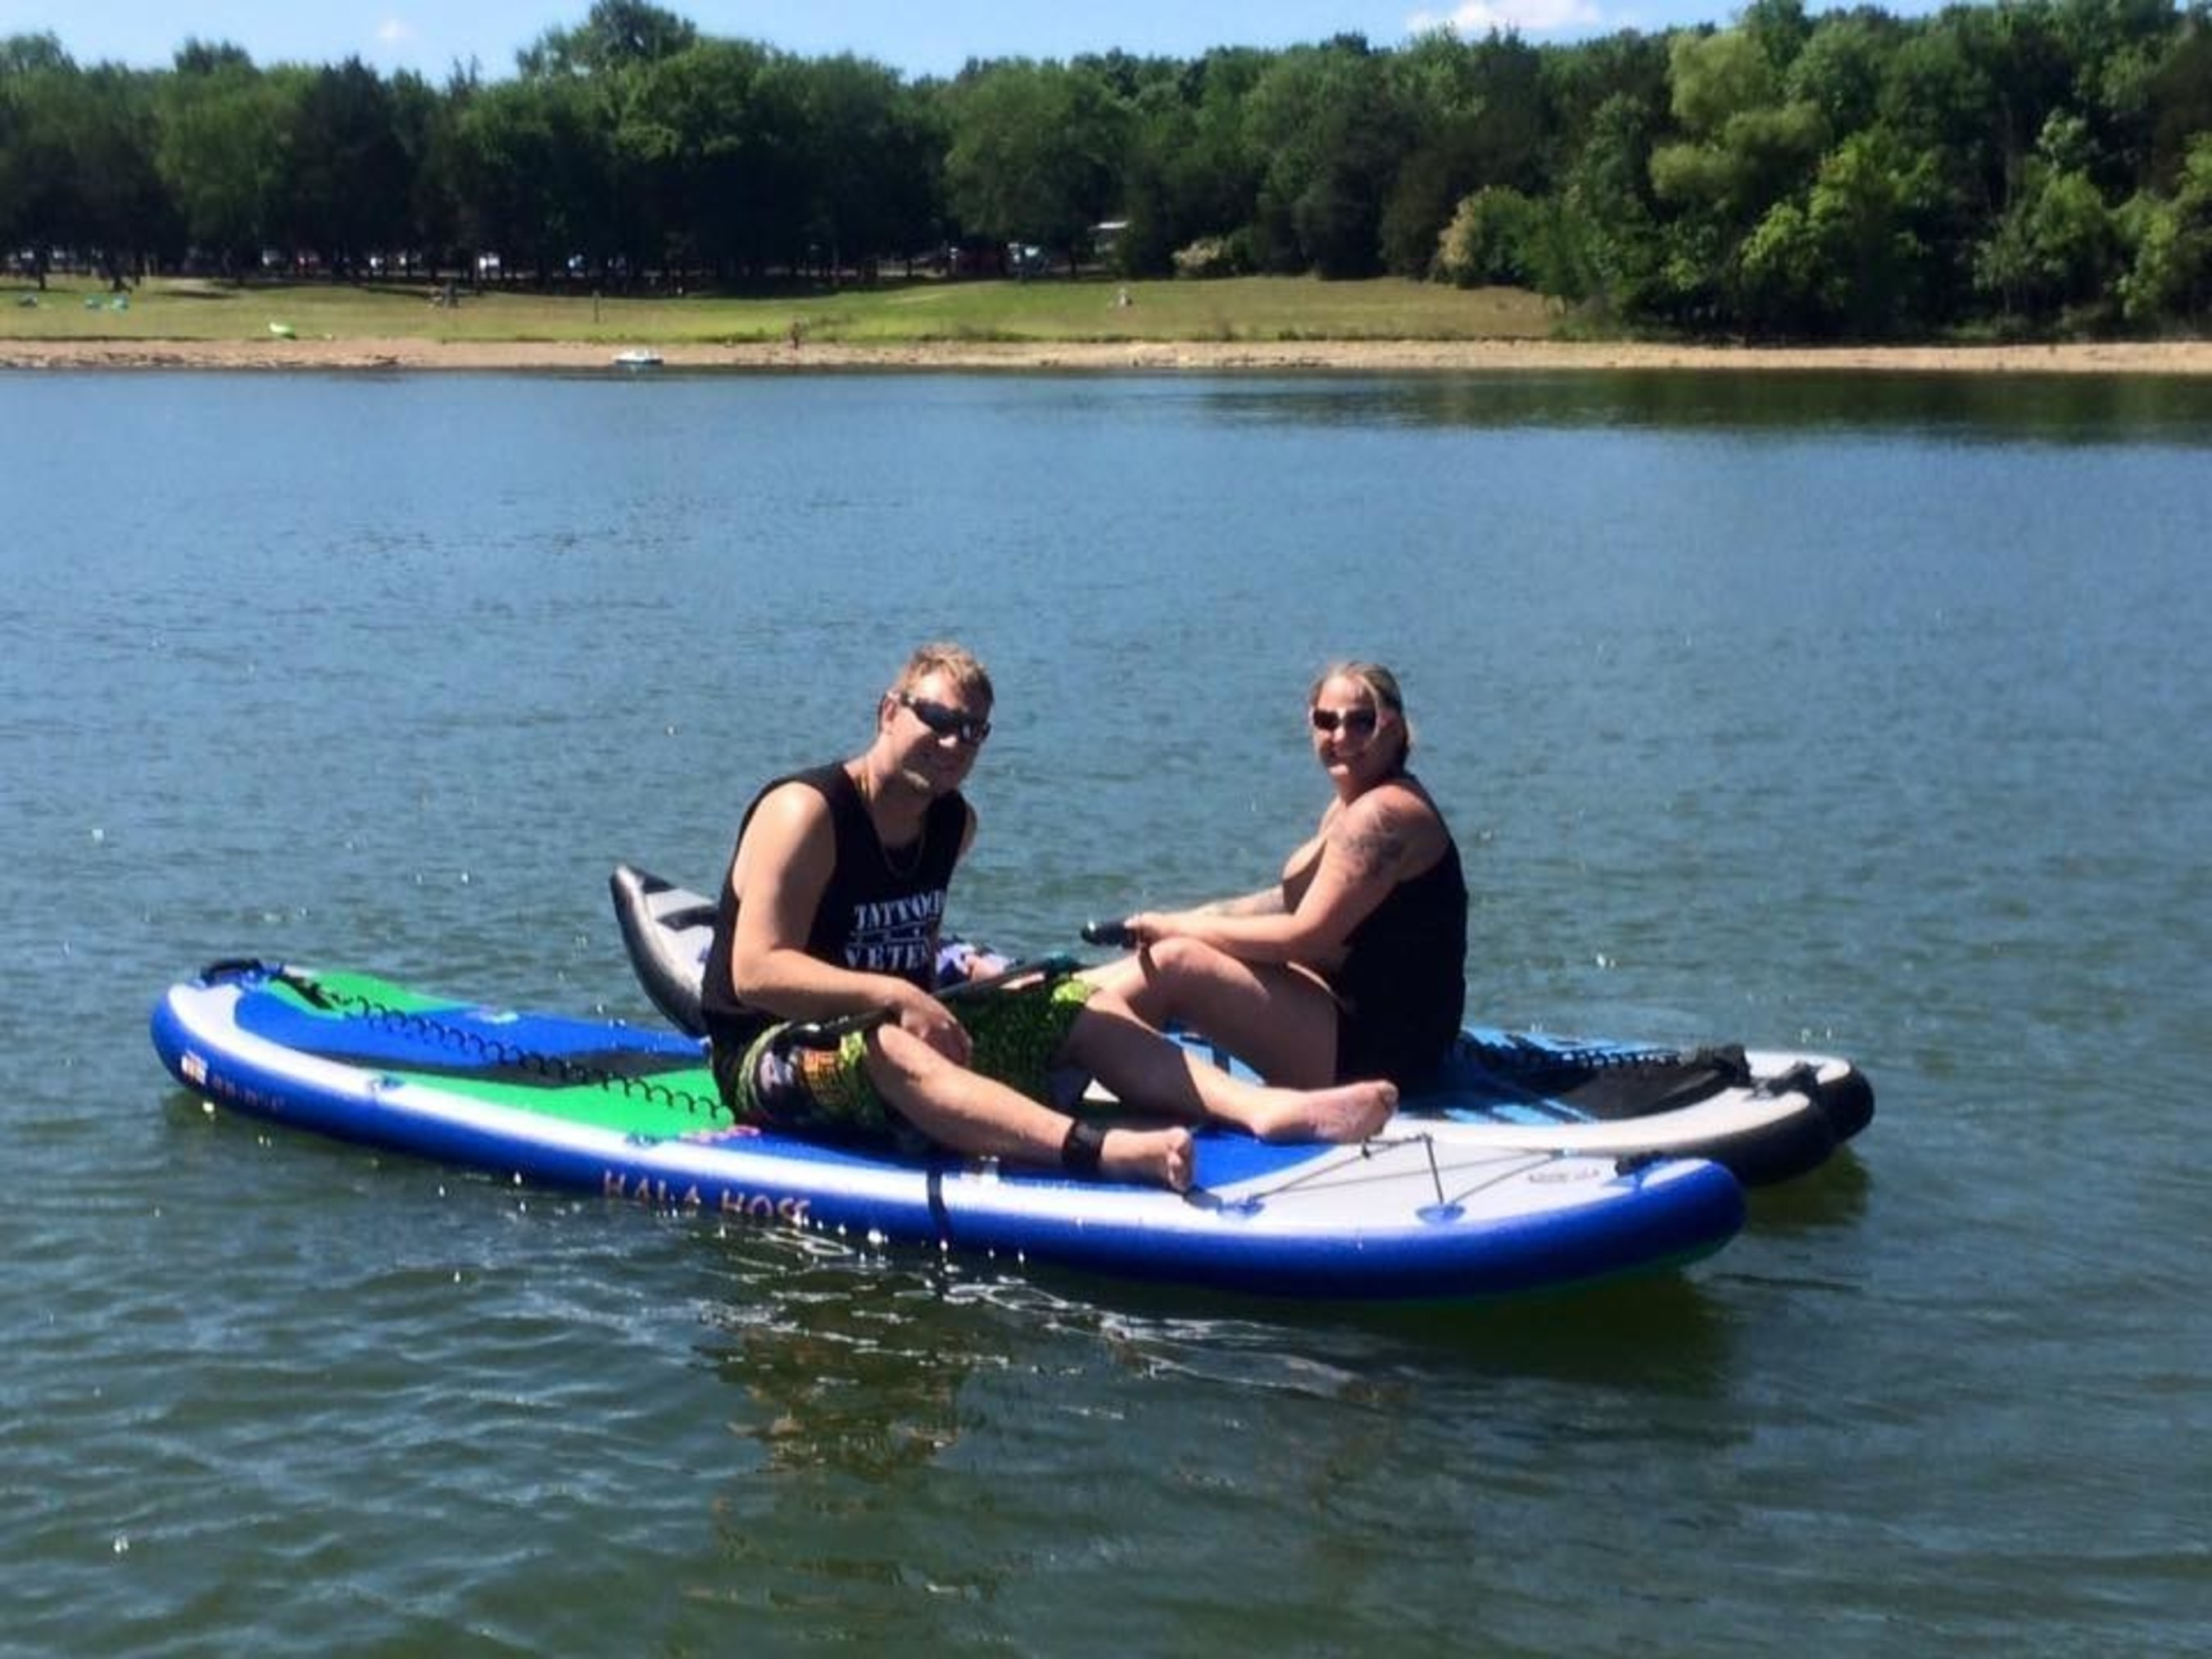 WWP hosts warriors for paddle boarding adventure.